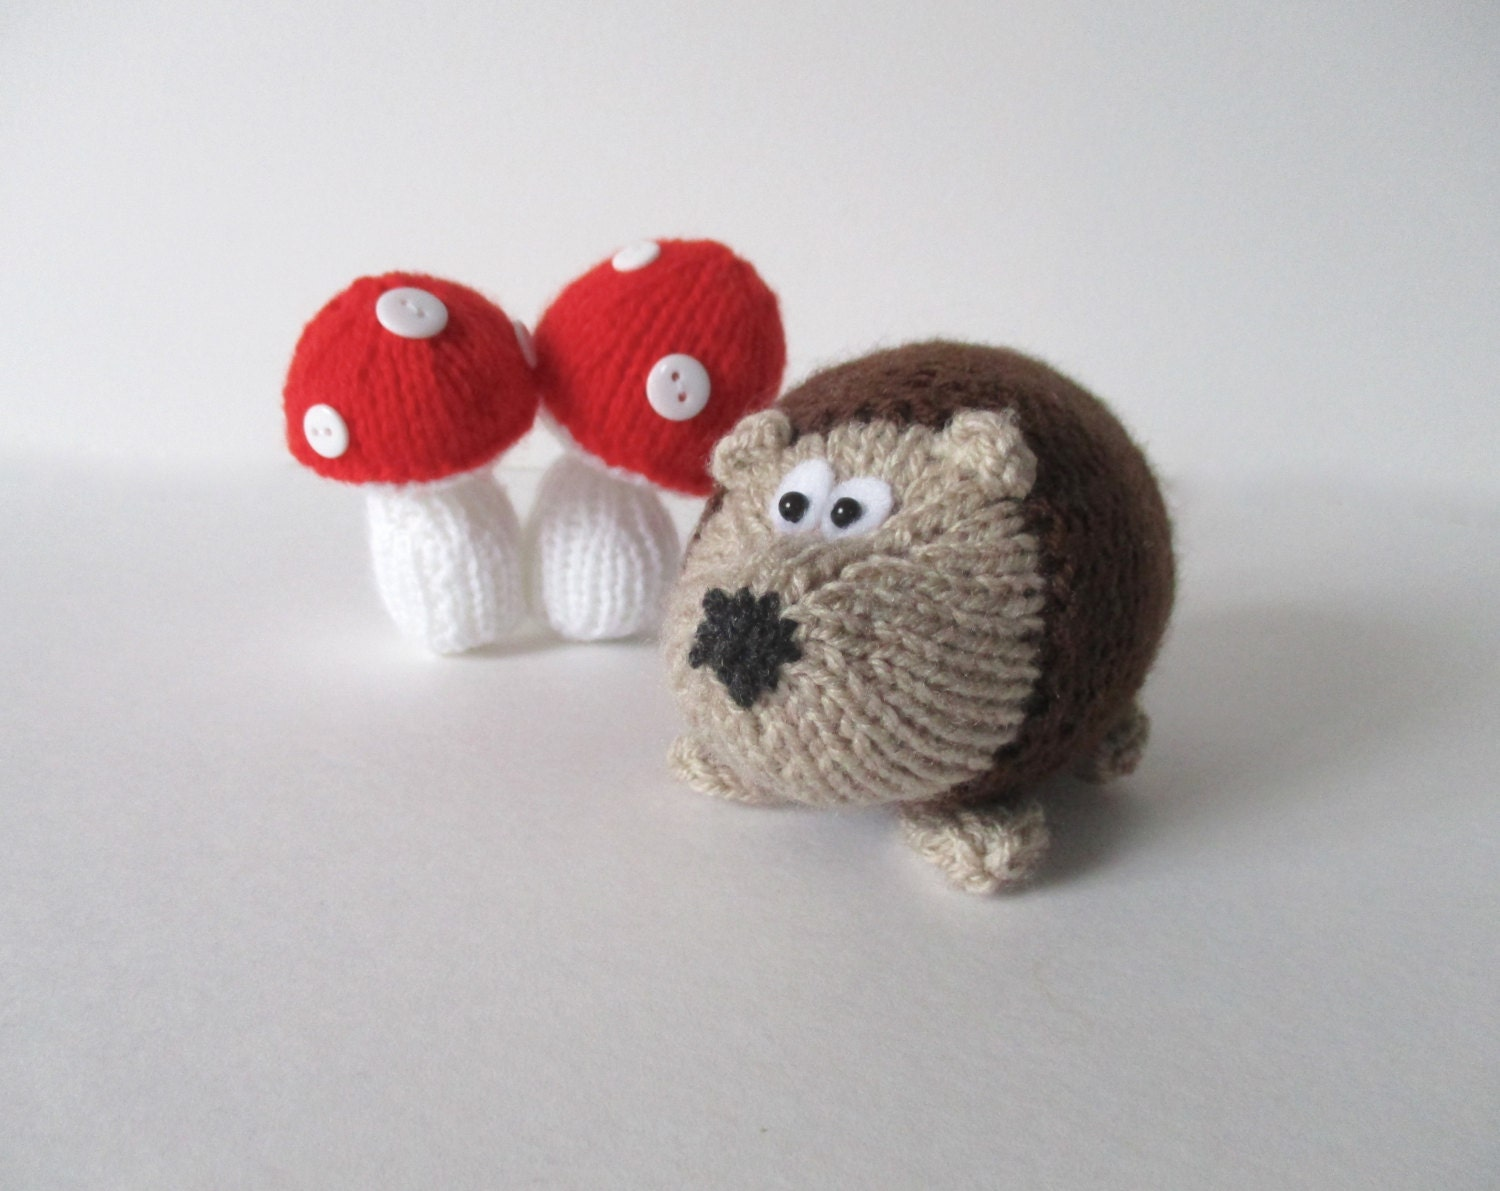 Knitting Pattern For Sonic The Hedgehog Toy : Kensington Hedgehog toy knitting patterns by fluffandfuzz ...